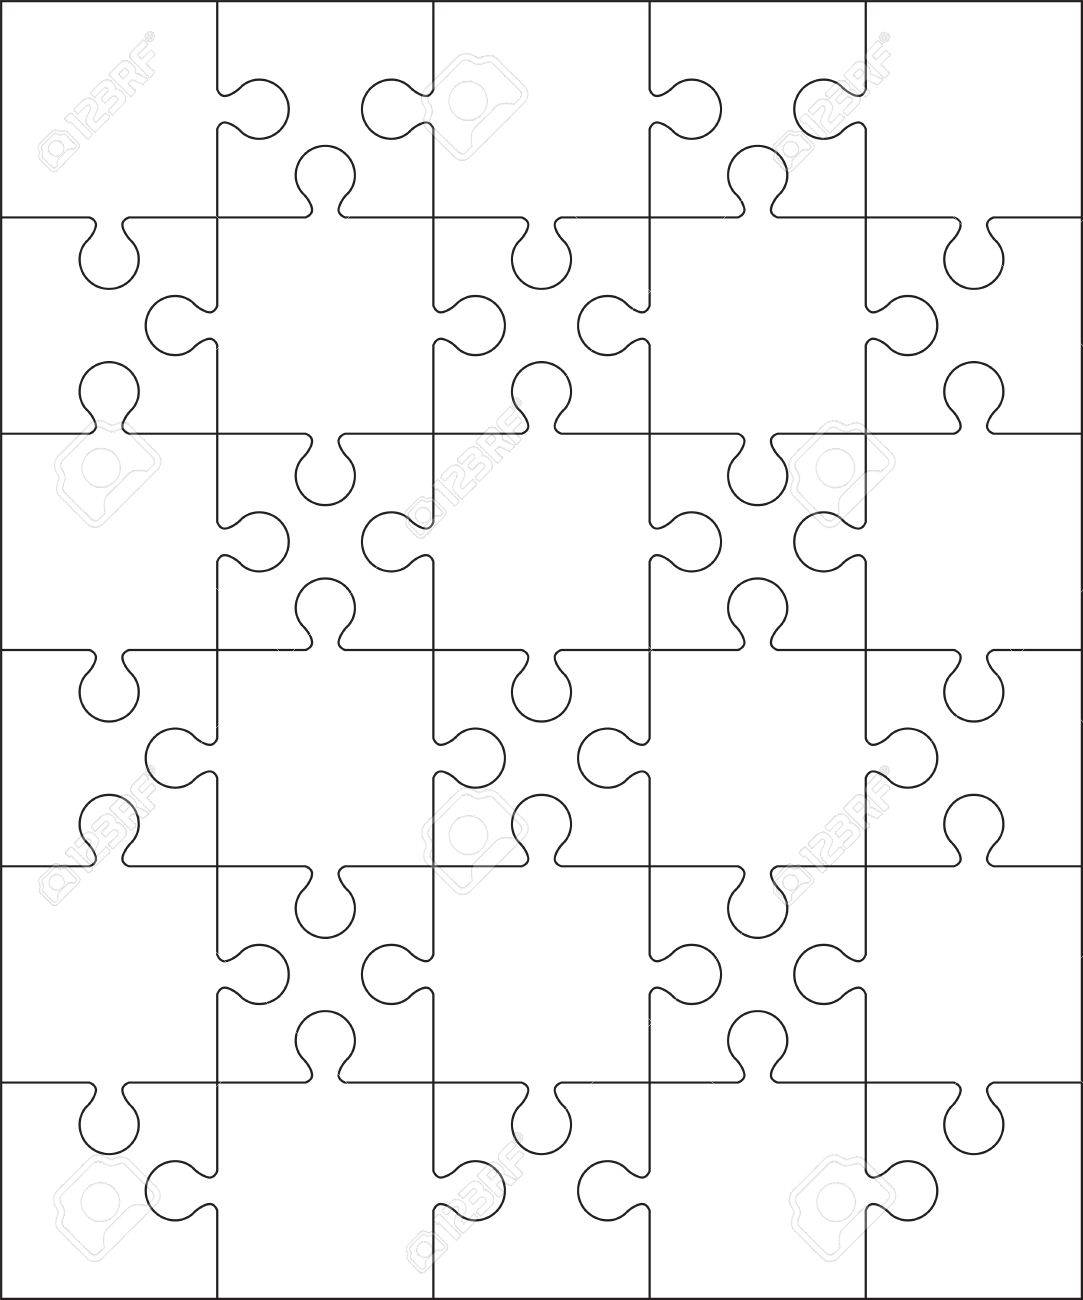 30 Jigsaw Puzzle Blank Template Or Cutting Guidelines 56 Ratio Stock Vector